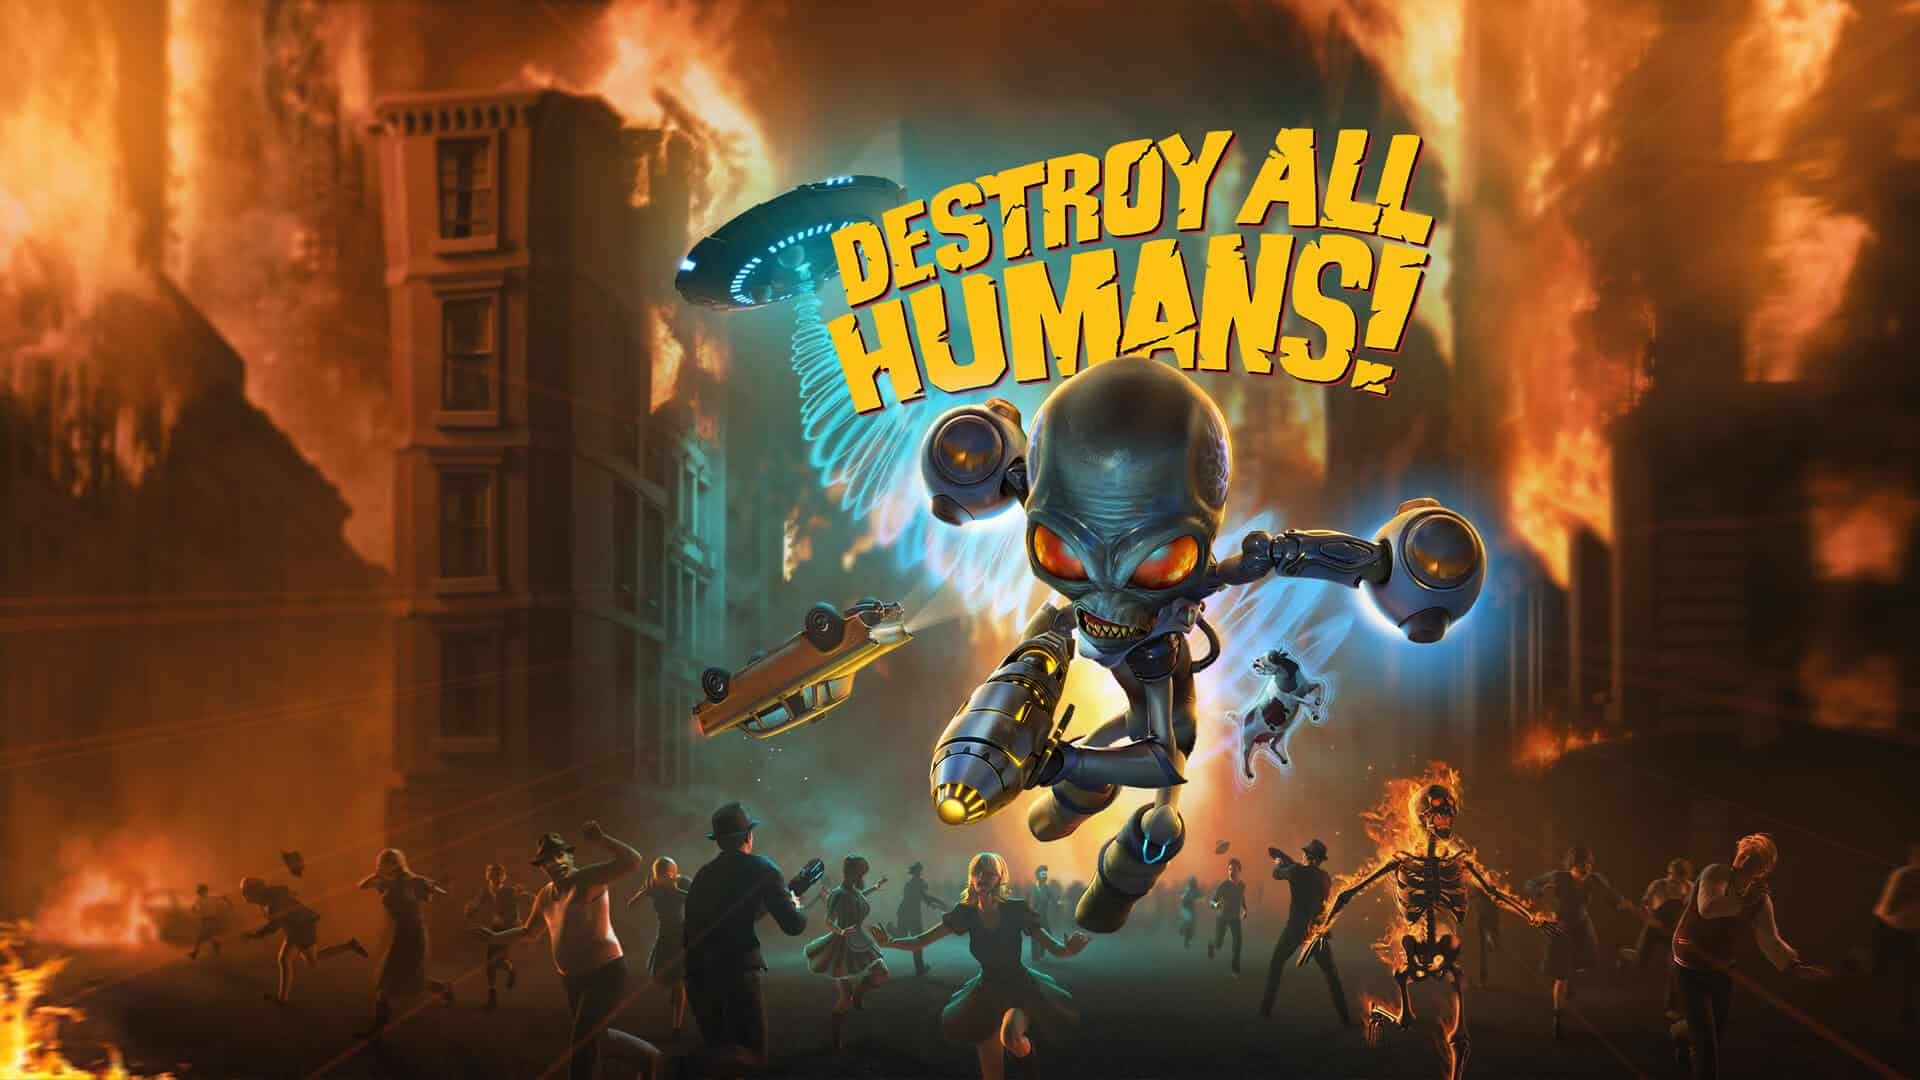 Collect All Aliens With Two Galactic Destroy All Humans! Special Editions